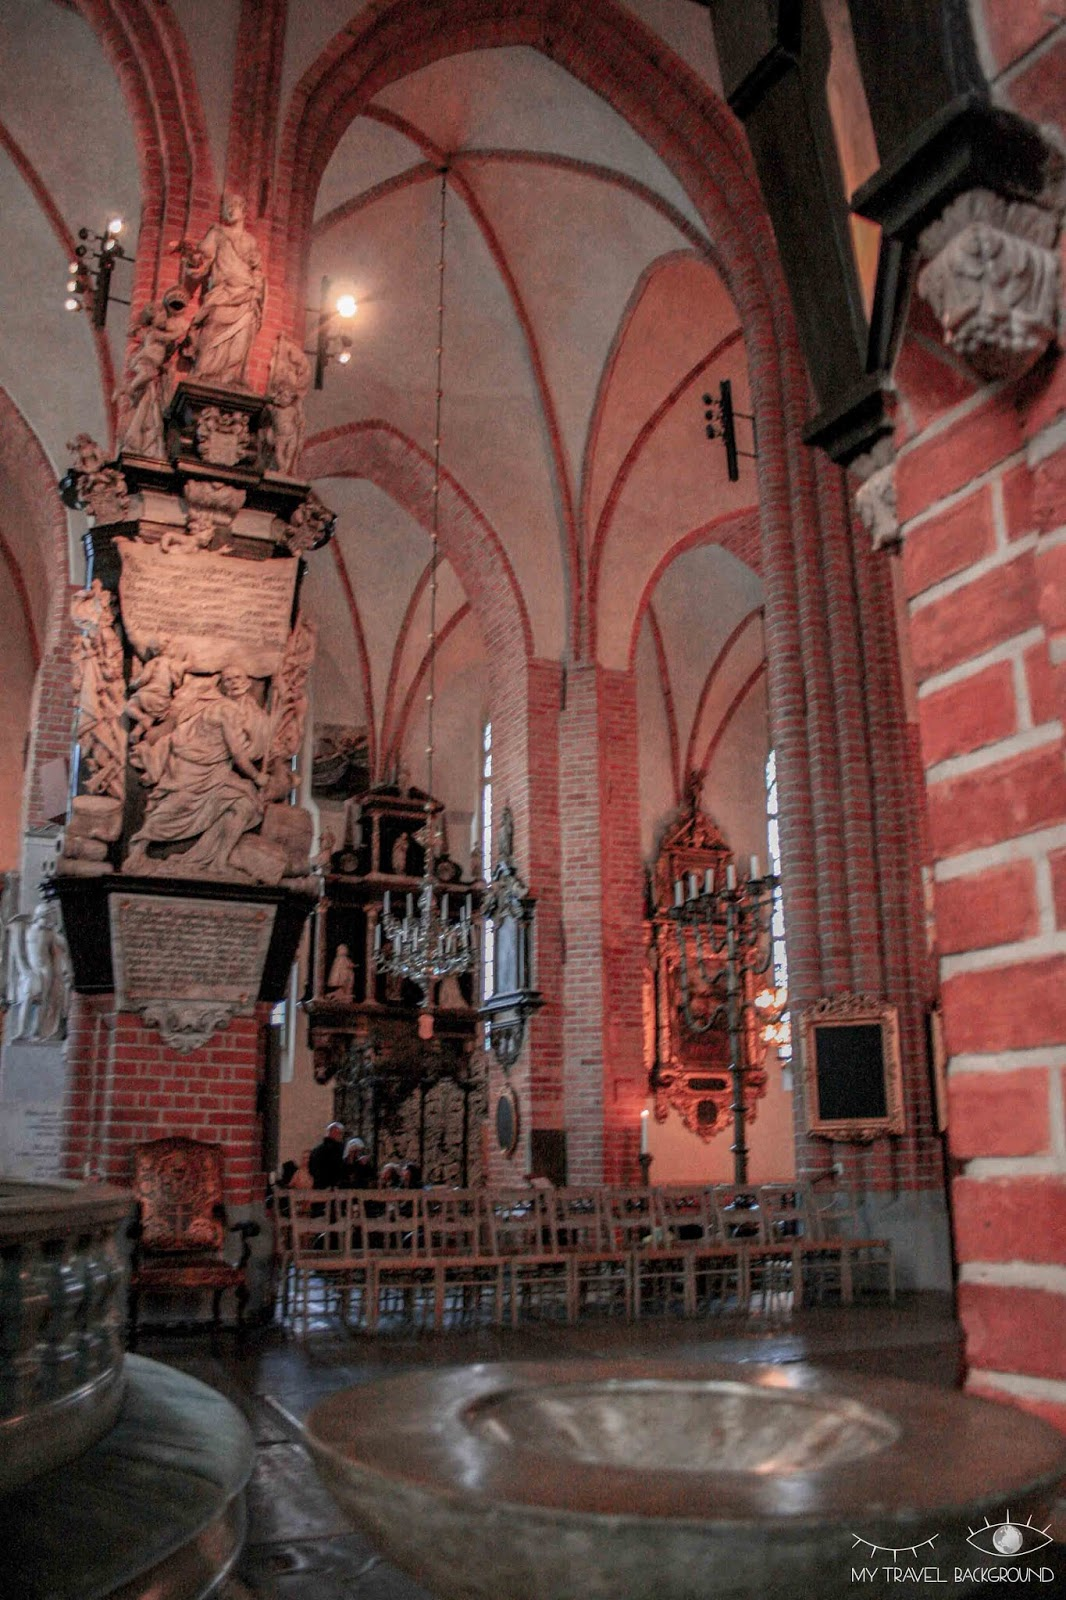 My Travel Background : Visiter Stockholm, mes immanquables - Cathédrale Storkyrkan